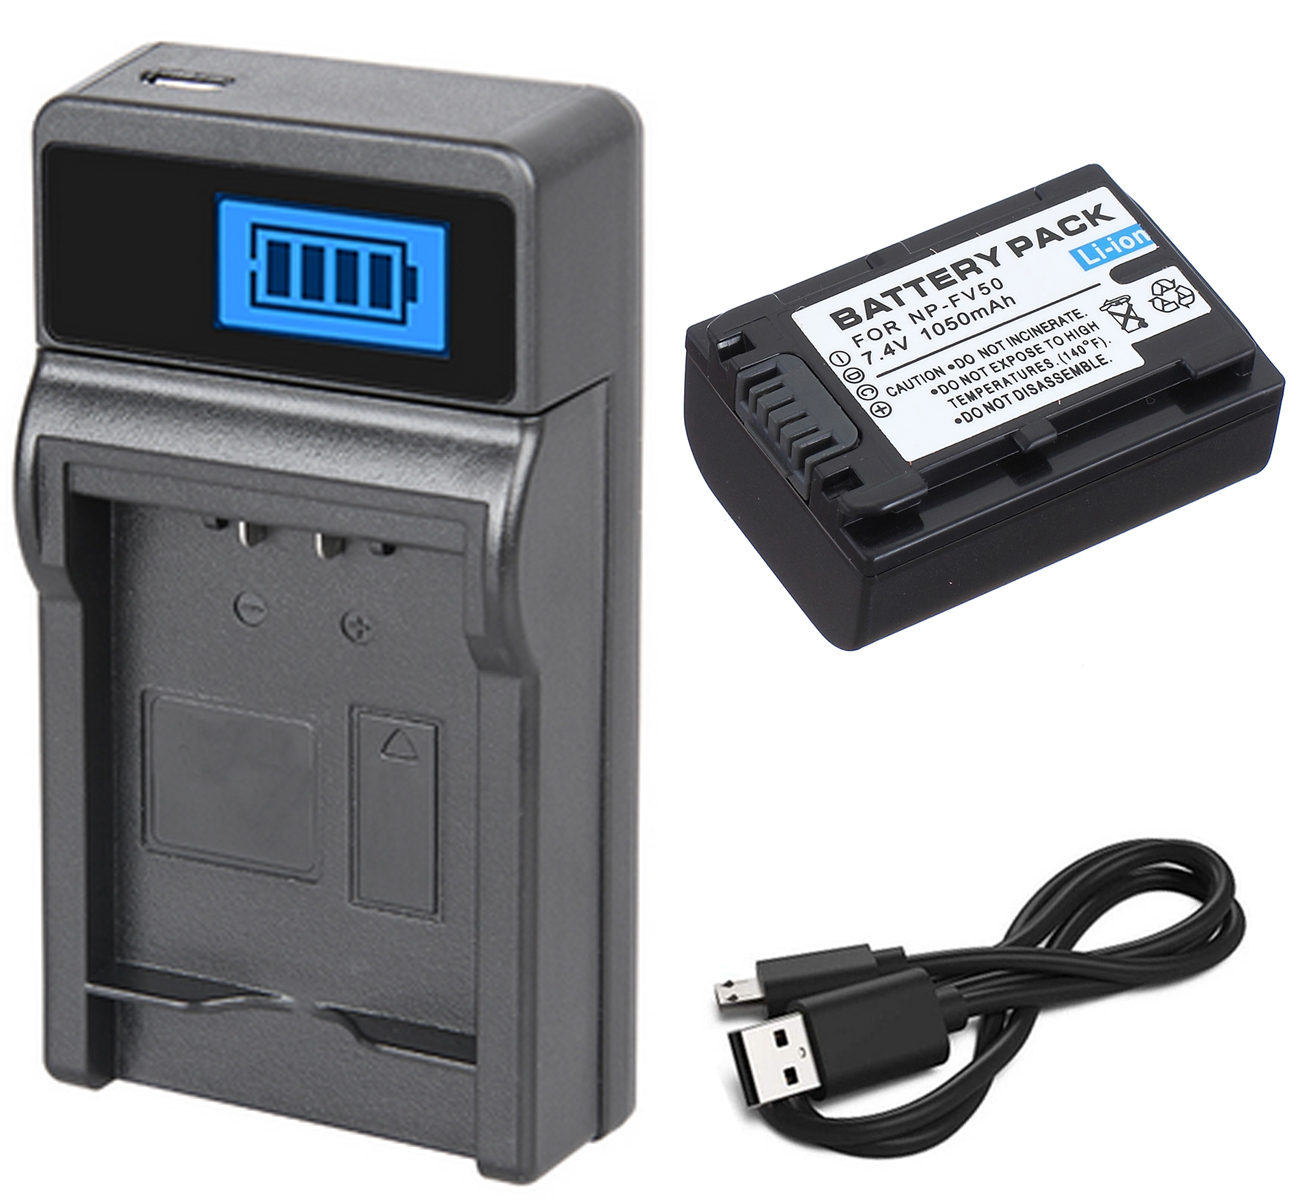 HDR-CX625E HDR-CX675E HDR-CX620E HDR-CX670E HDR-CX680E HDR-CX690E Handycam Camcorder LCD Quick Battery Charger for Sony HDR-CX610E HDR-CX630VE